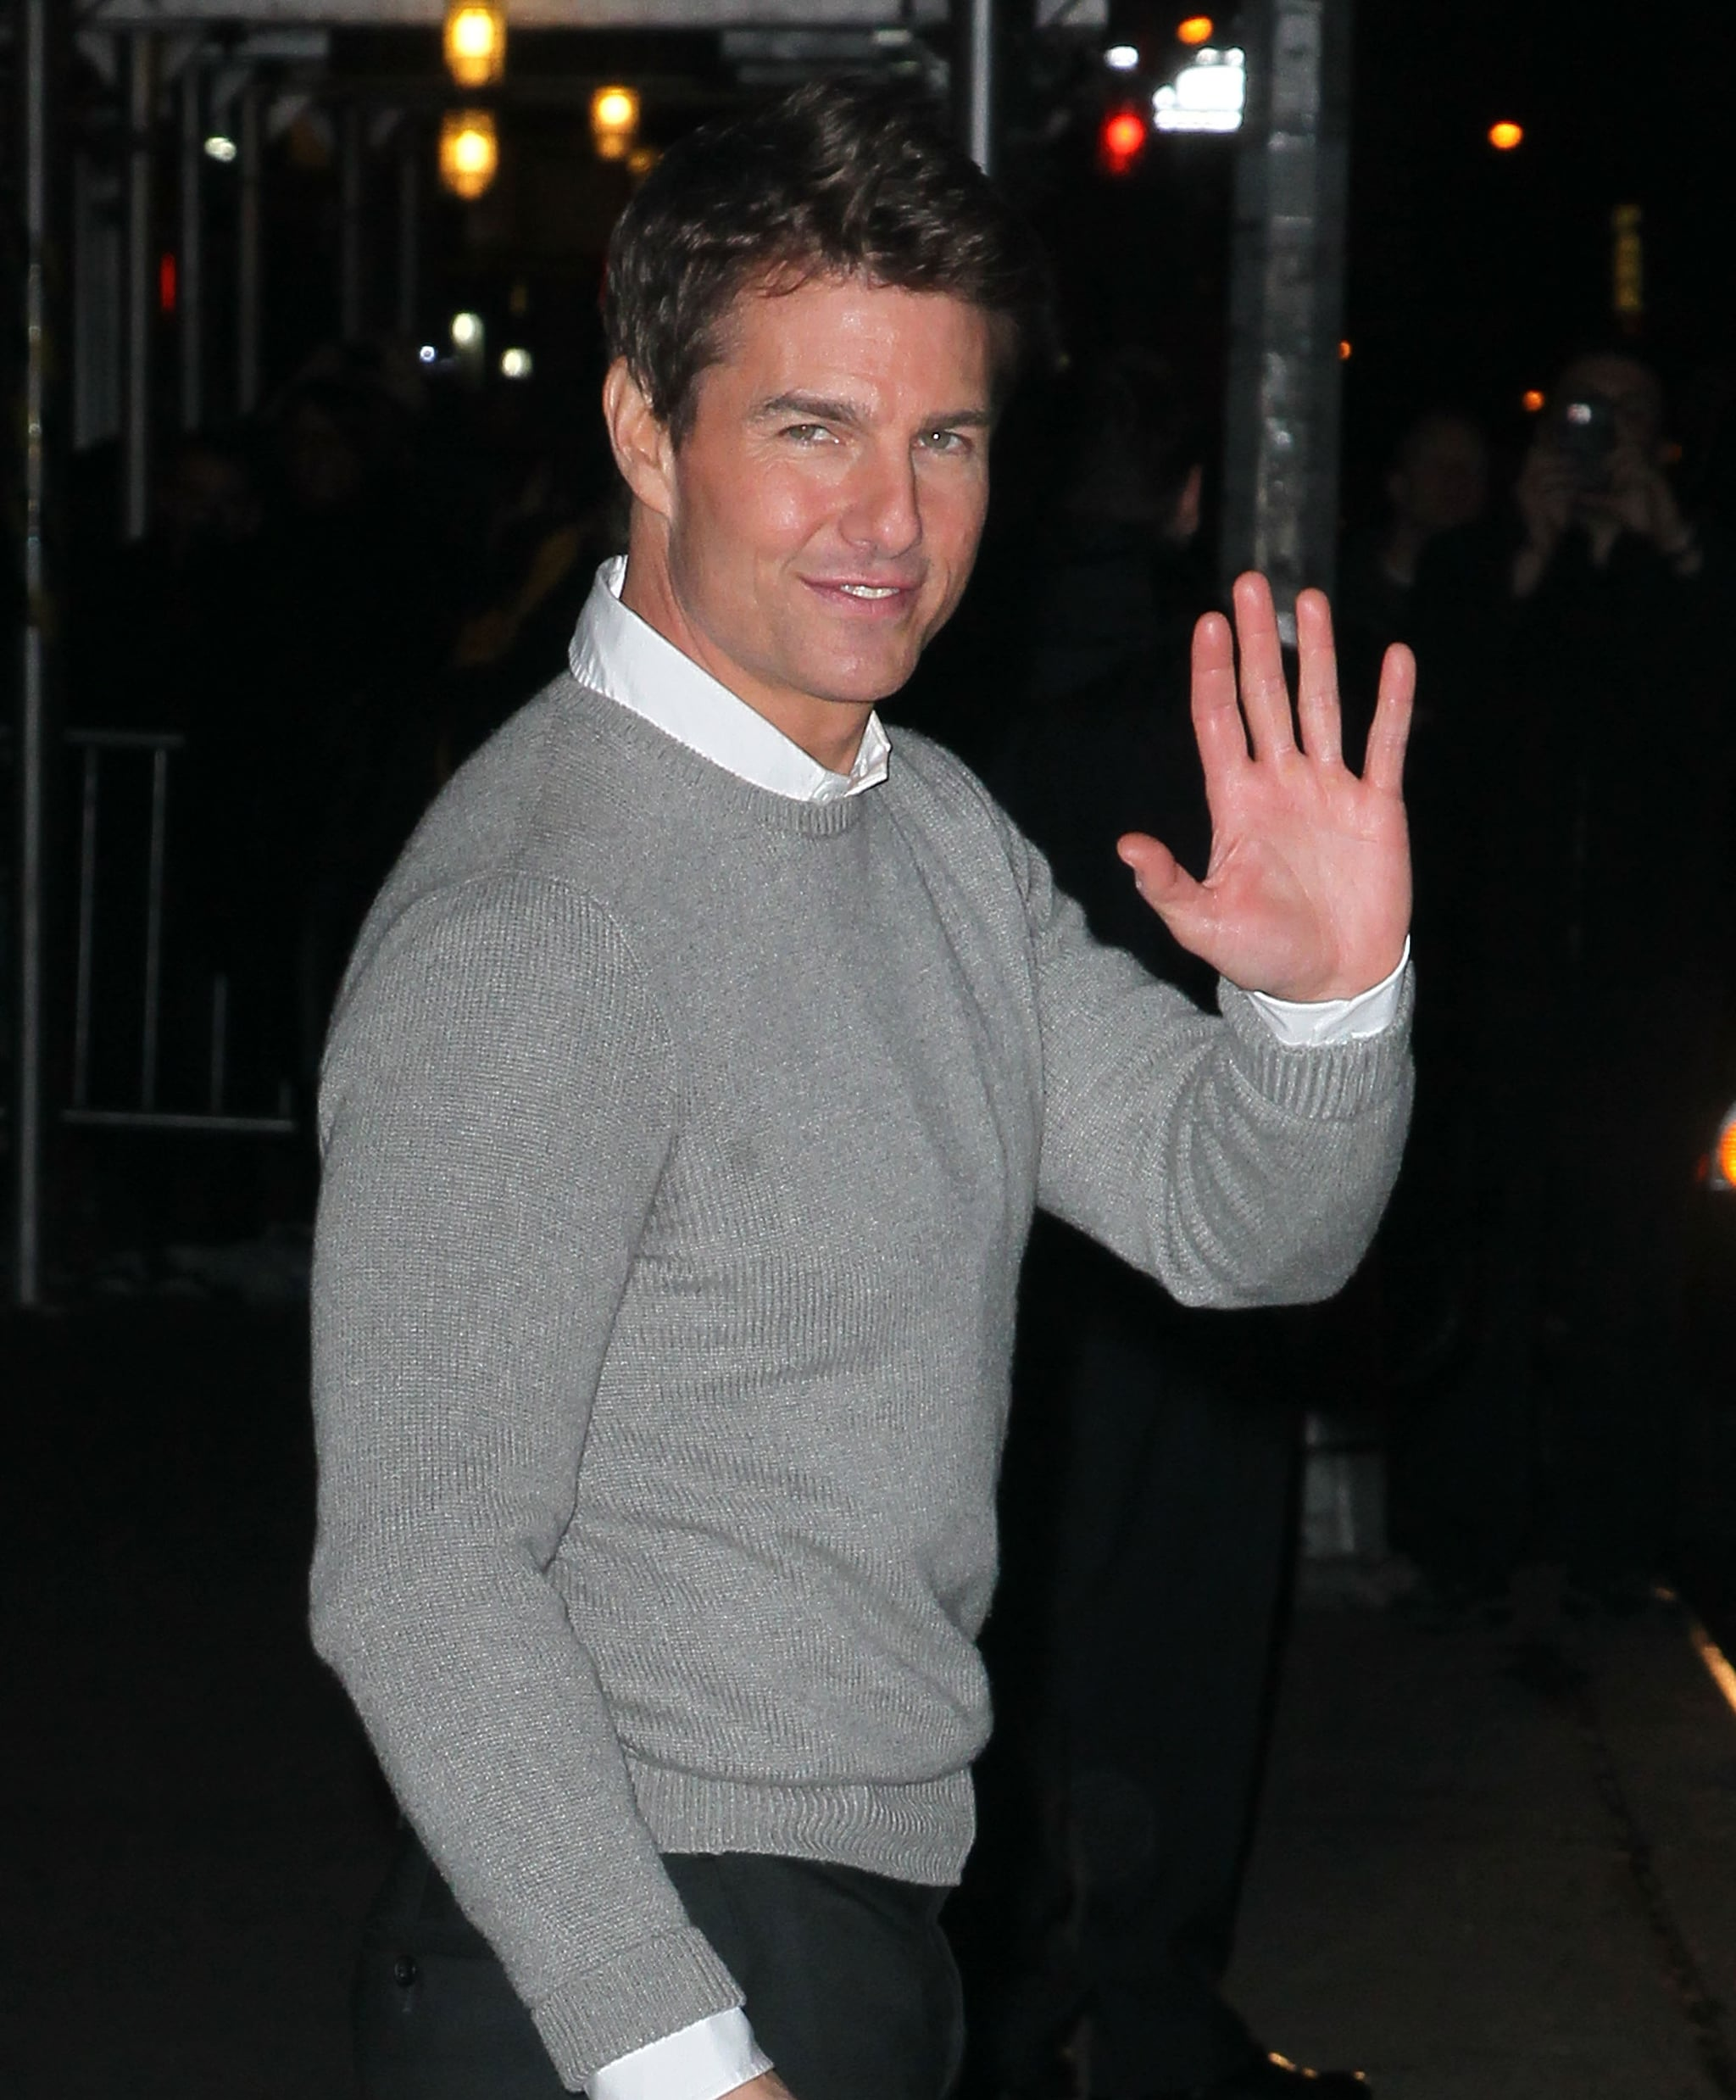 Tom Cruise was in town promoting his new film.